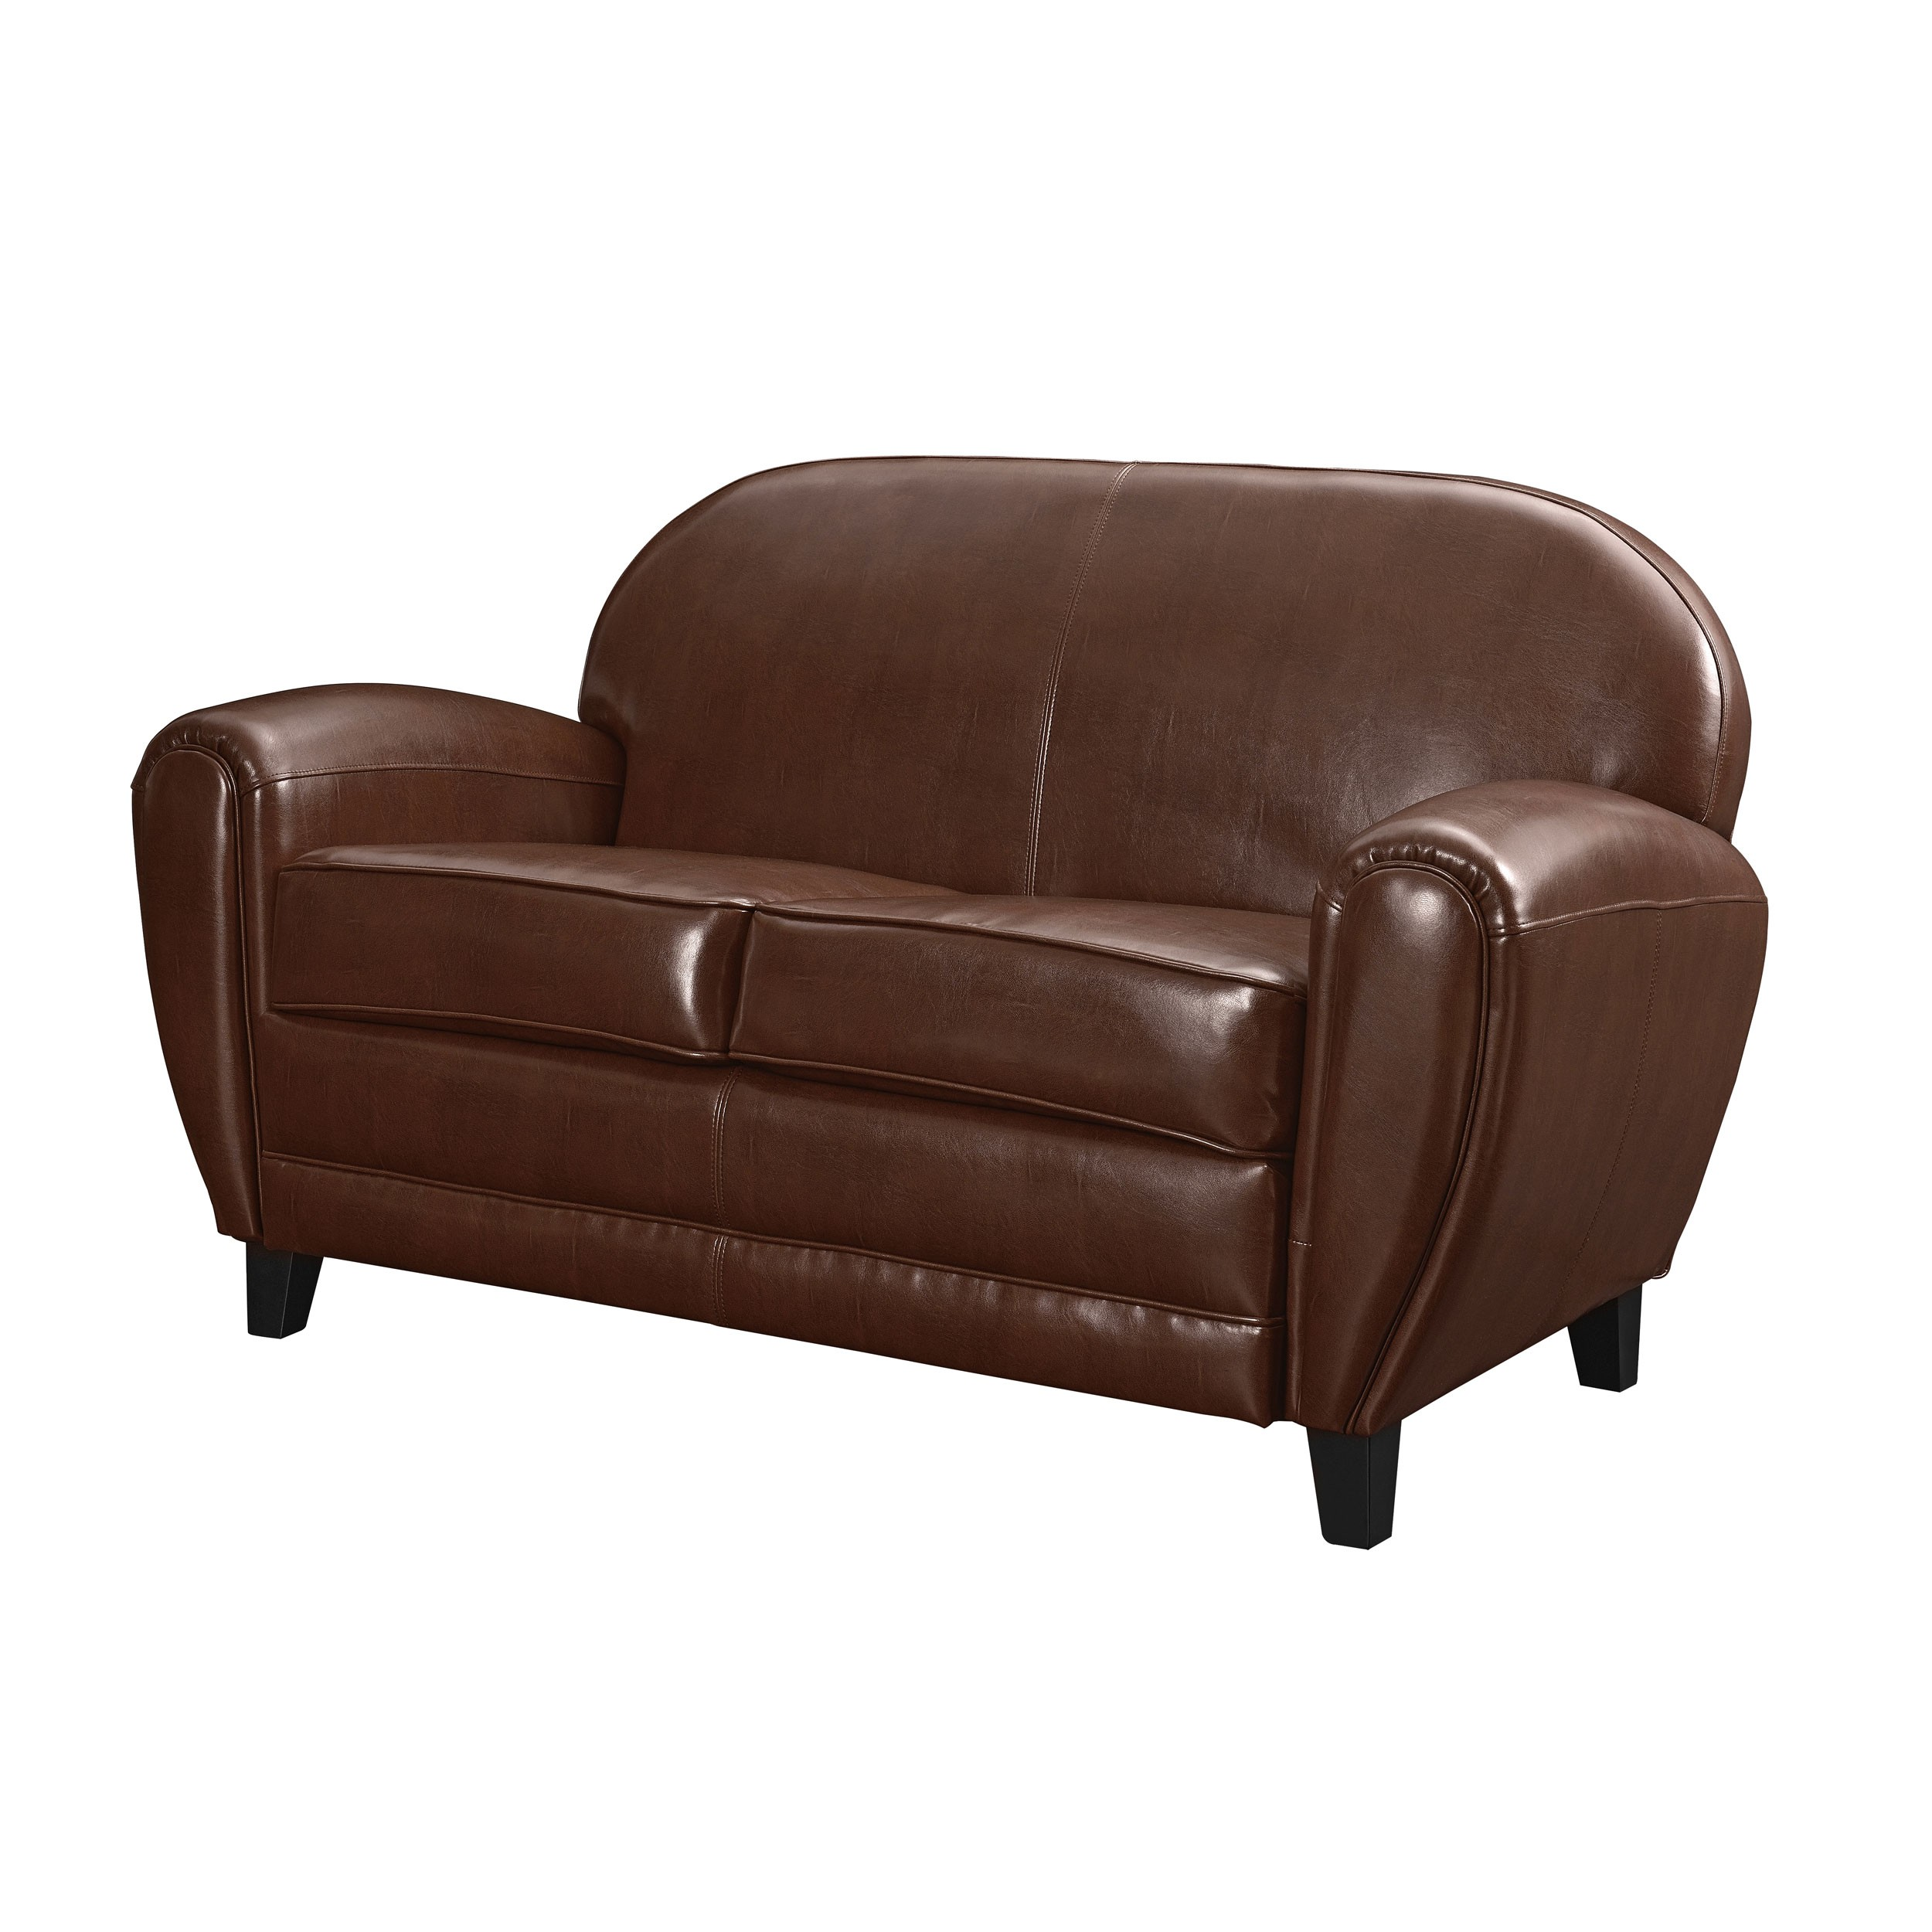 canap club 2 places cuir marron commandez nos canap s club 2 places cuir marron rdv d co. Black Bedroom Furniture Sets. Home Design Ideas